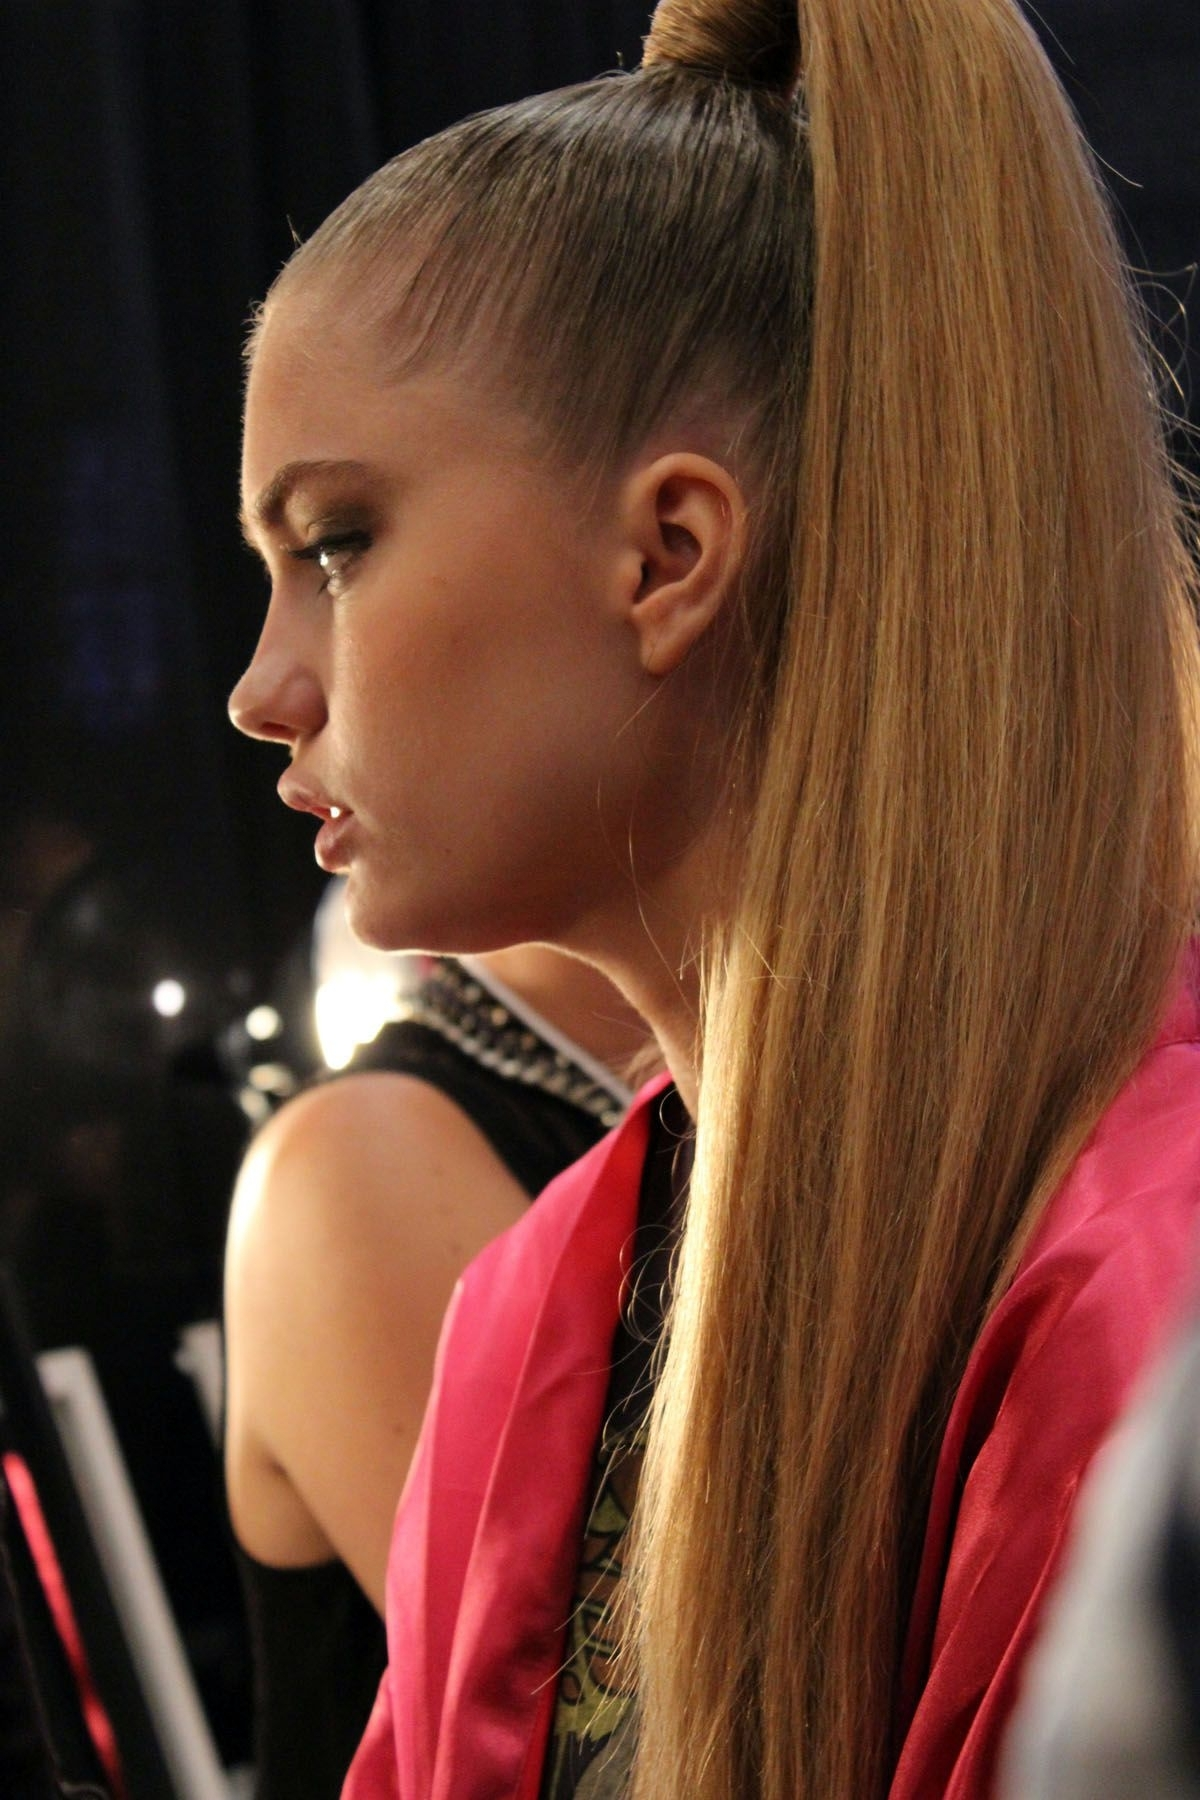 Trendy Bold And Blonde High Ponytail Hairstyles For Ponytail Hairstyle Miami Beach Fashion Week Swim Sleek High Ponytail (View 16 of 20)